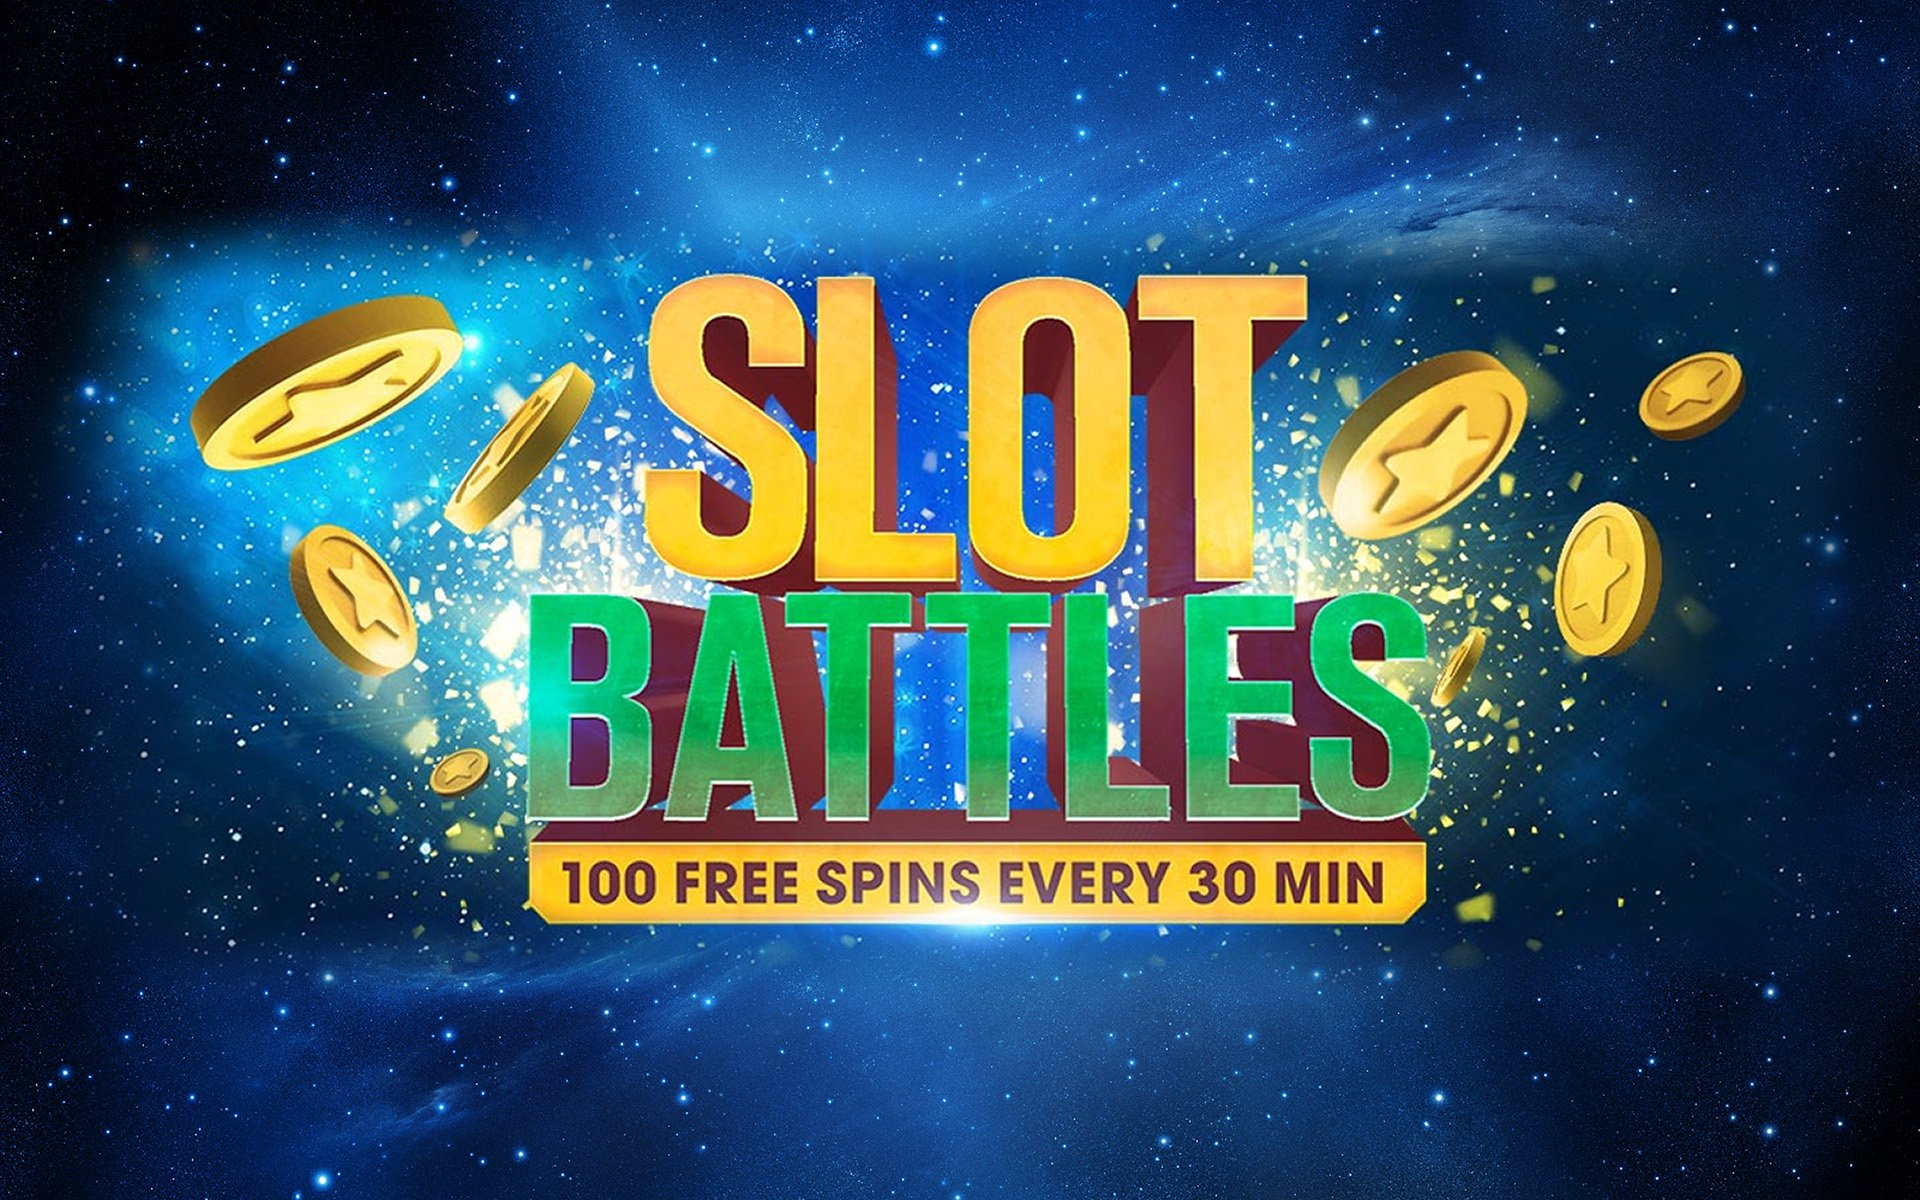 144,000 Free Spins Up for Grabs Monthly in BitStarz's New Slot Battles!